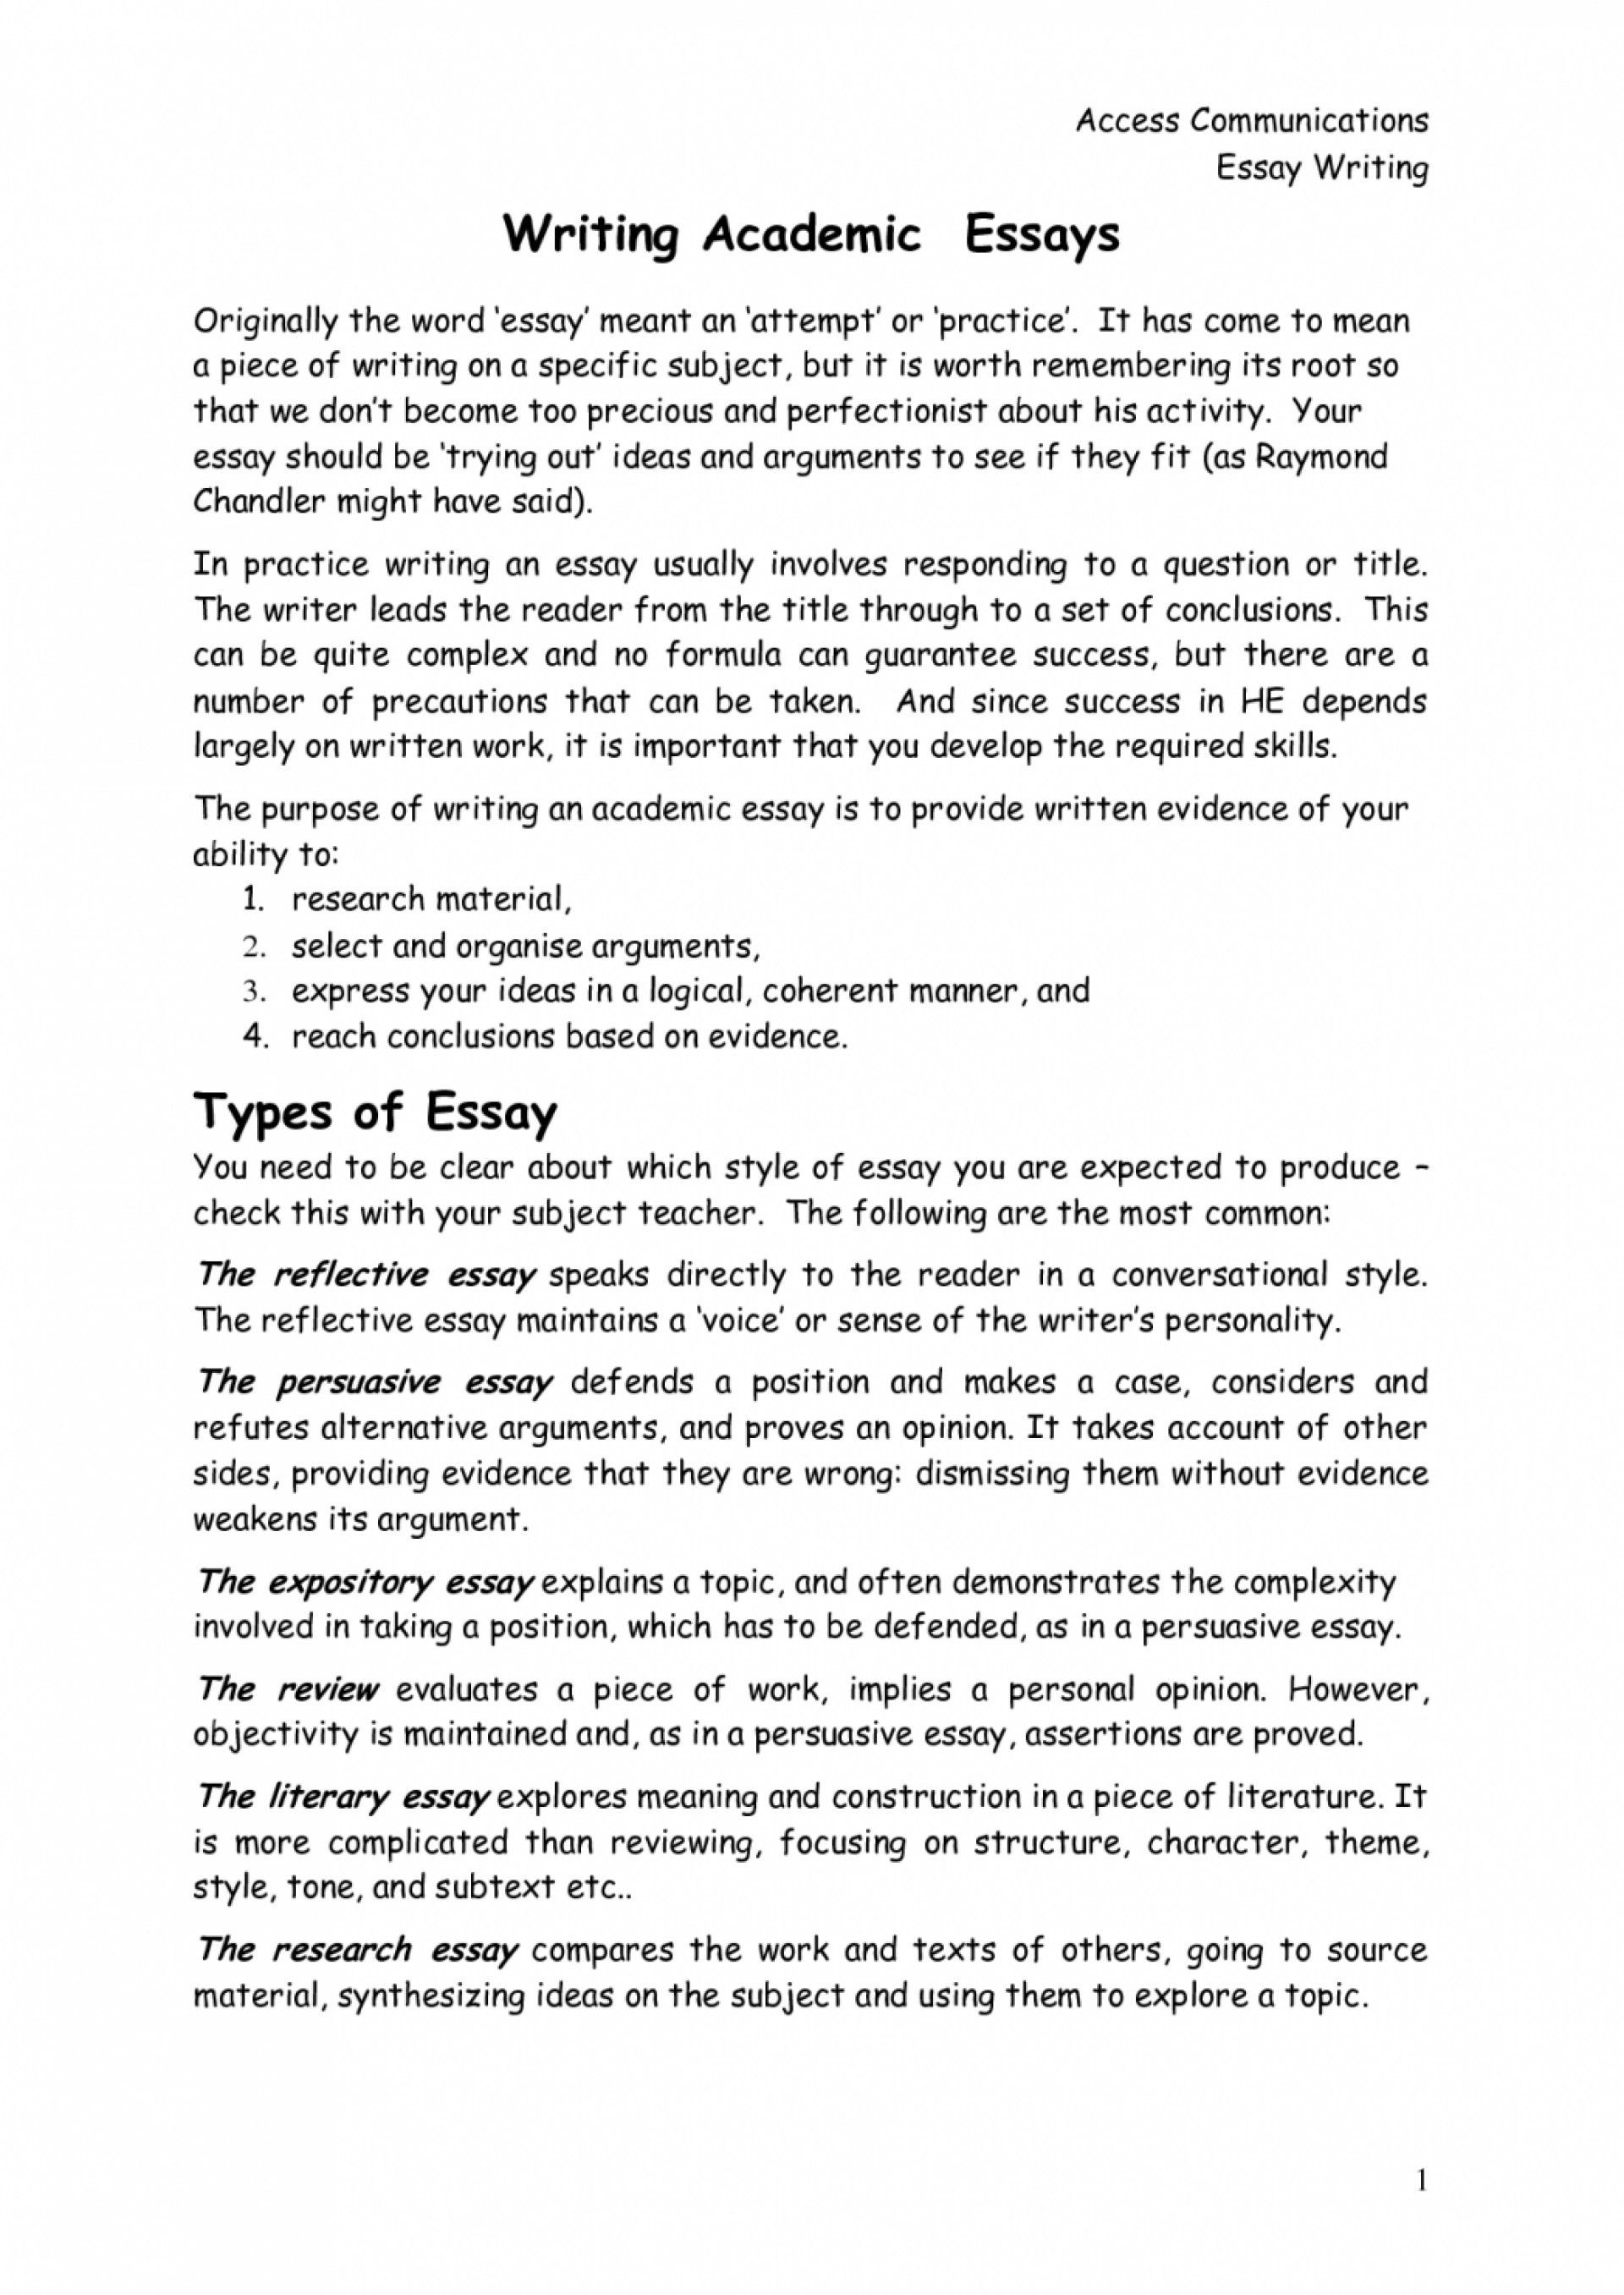 013 Essay Example Personal Reflective Examples On Academic Writing How To Write English Examp Class Higher Advanced Sqa National Pdf Frightening Development Topics 1920